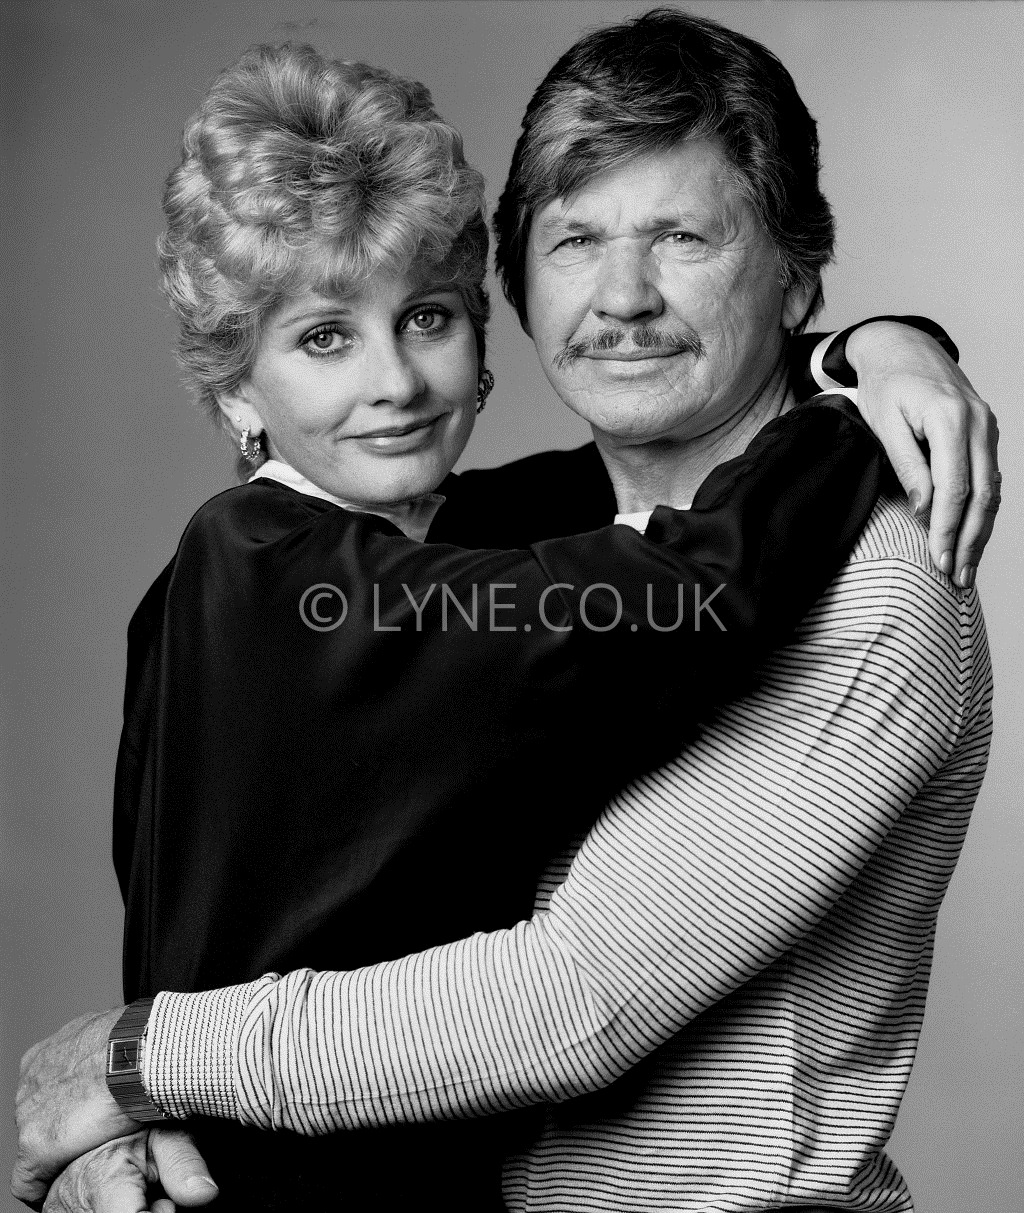 Charles Bronson Amp Jill Ireland Posters And Prints By Steve